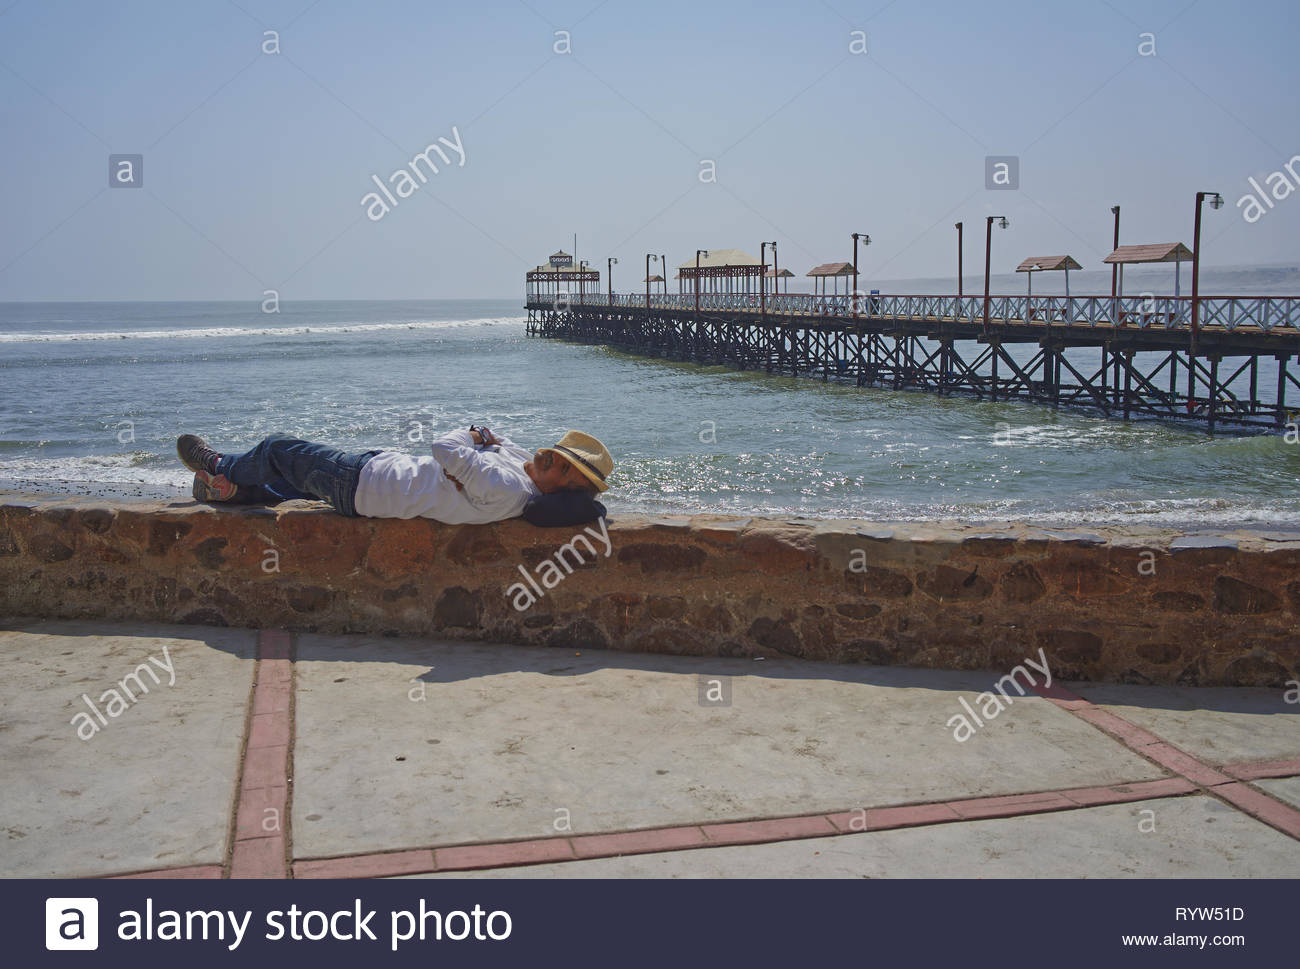 Man sleeping on boardwalk with the beautiful pir in the Background at Huanchaco Beach Trujillo Peru - Stock Image